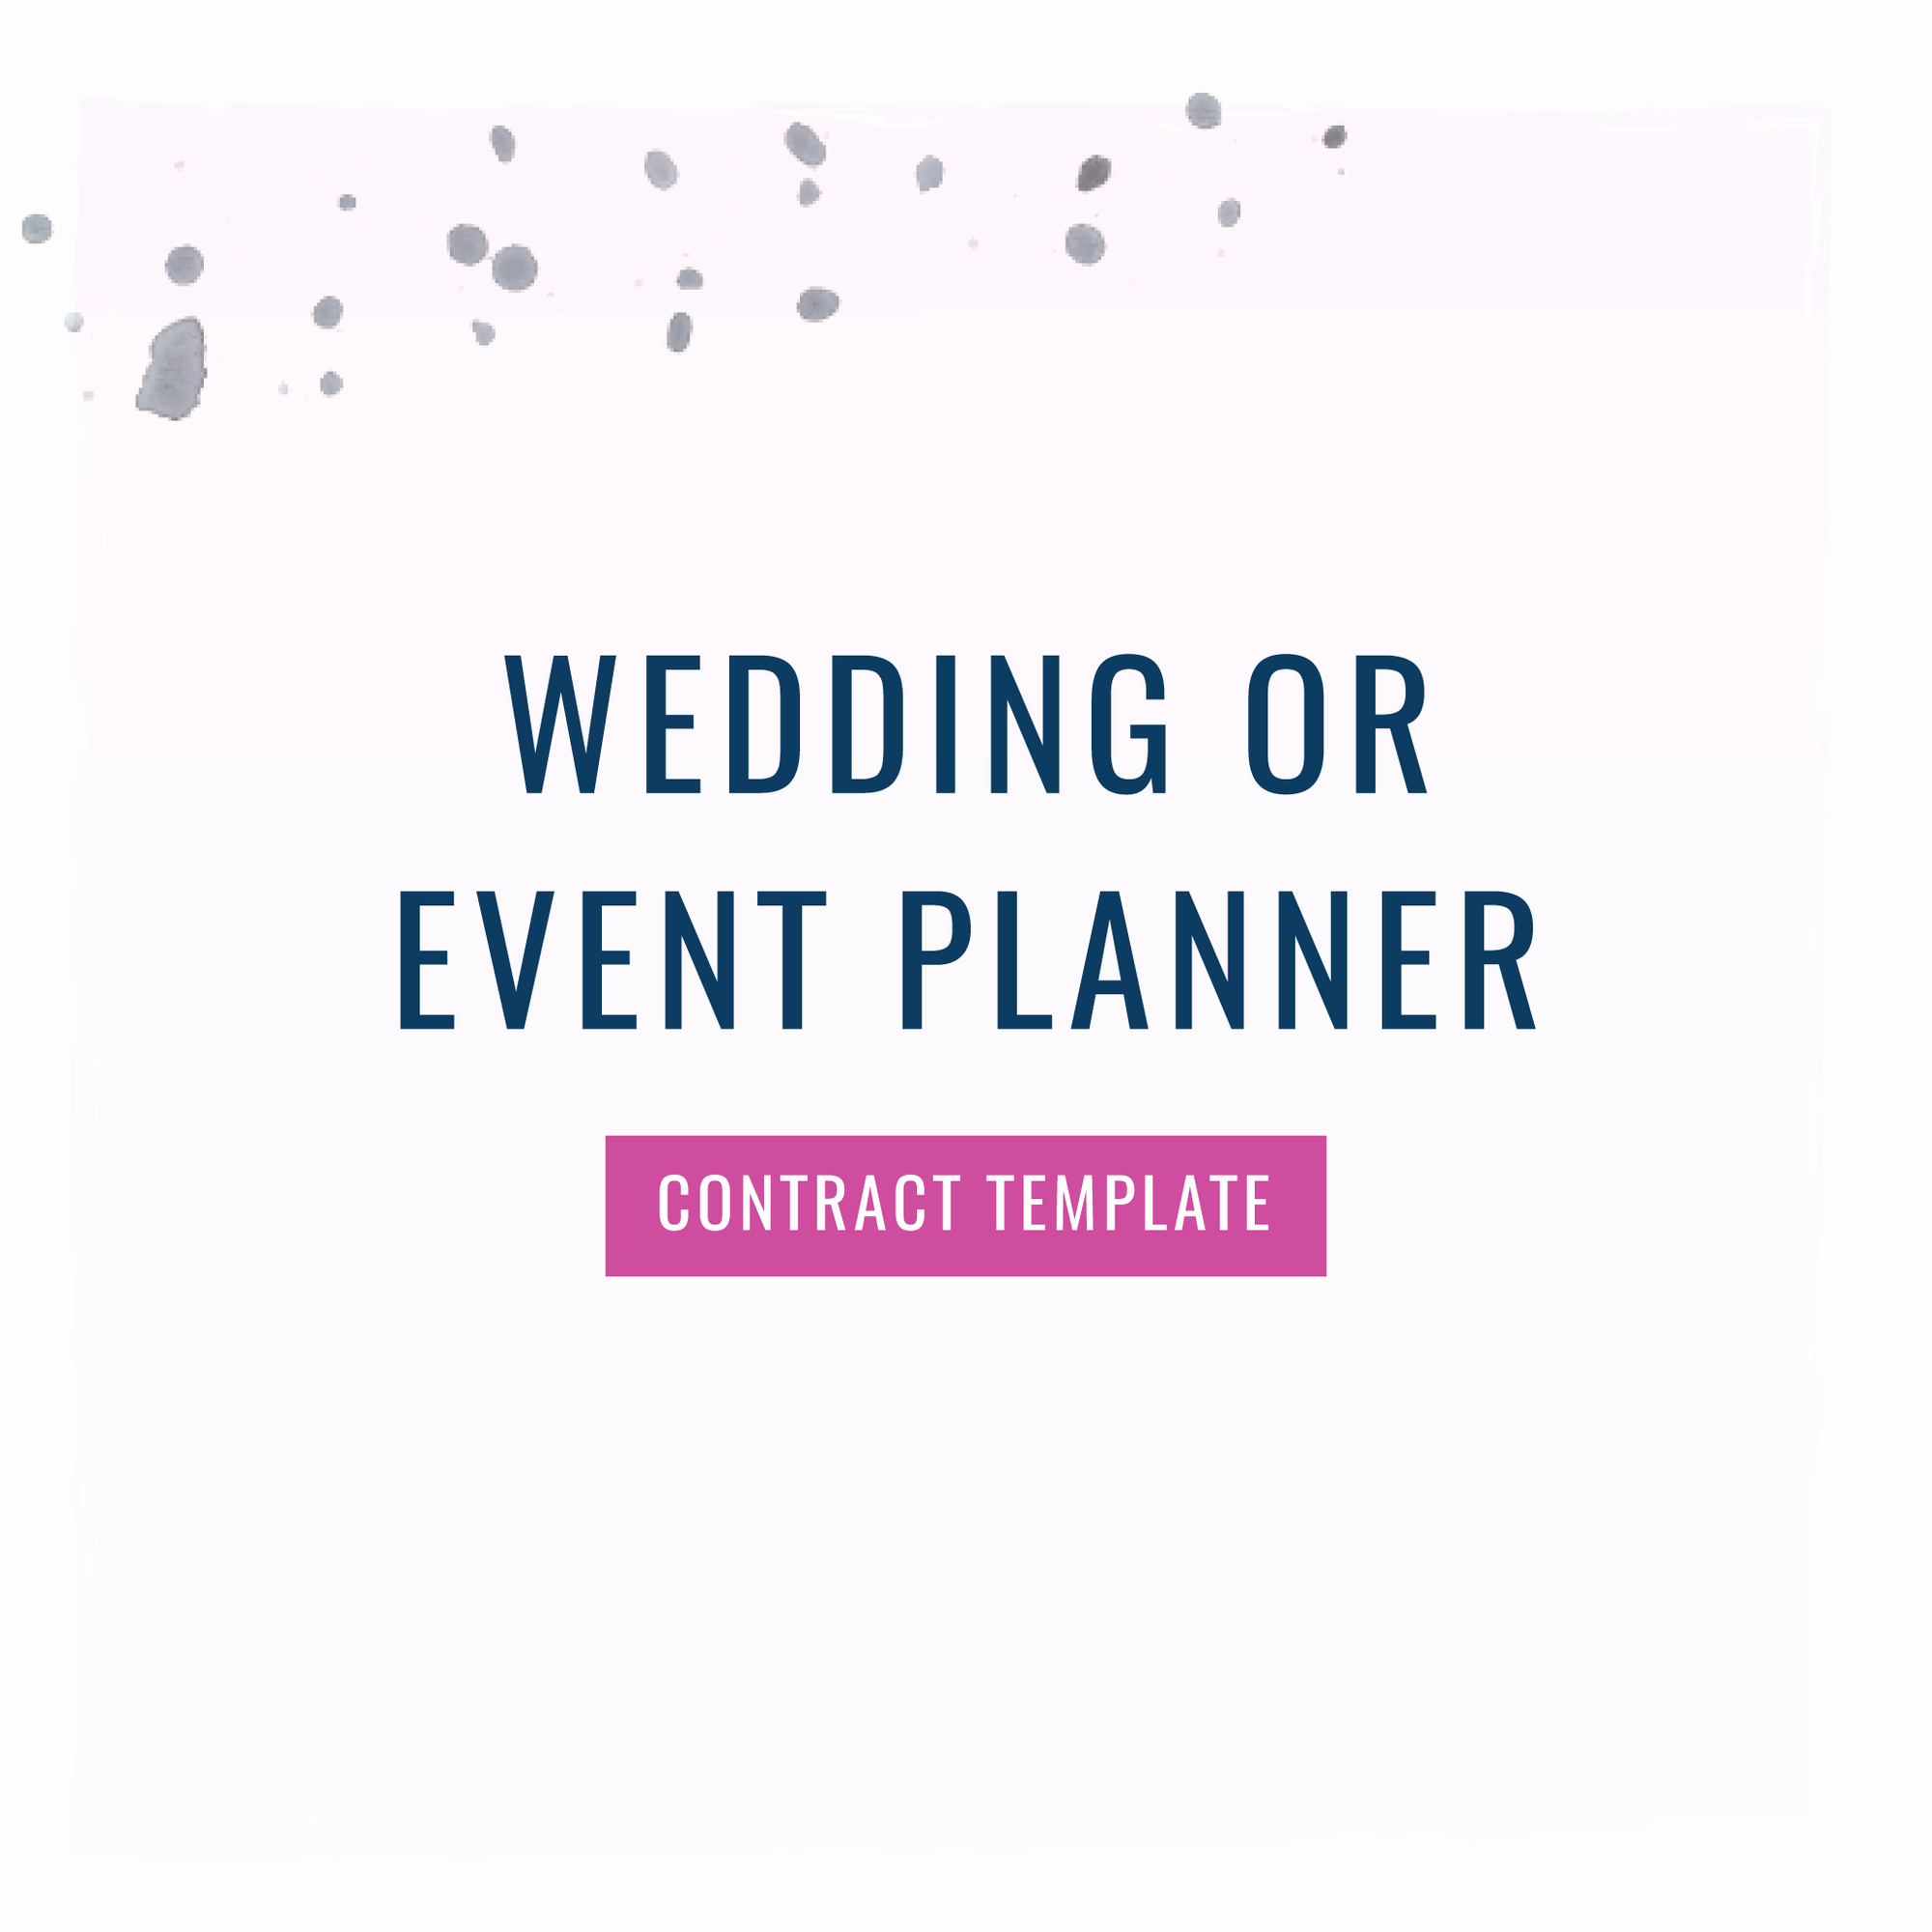 Event Planning Contract Template Best Of Wedding or event Planner Contract Template the Contract